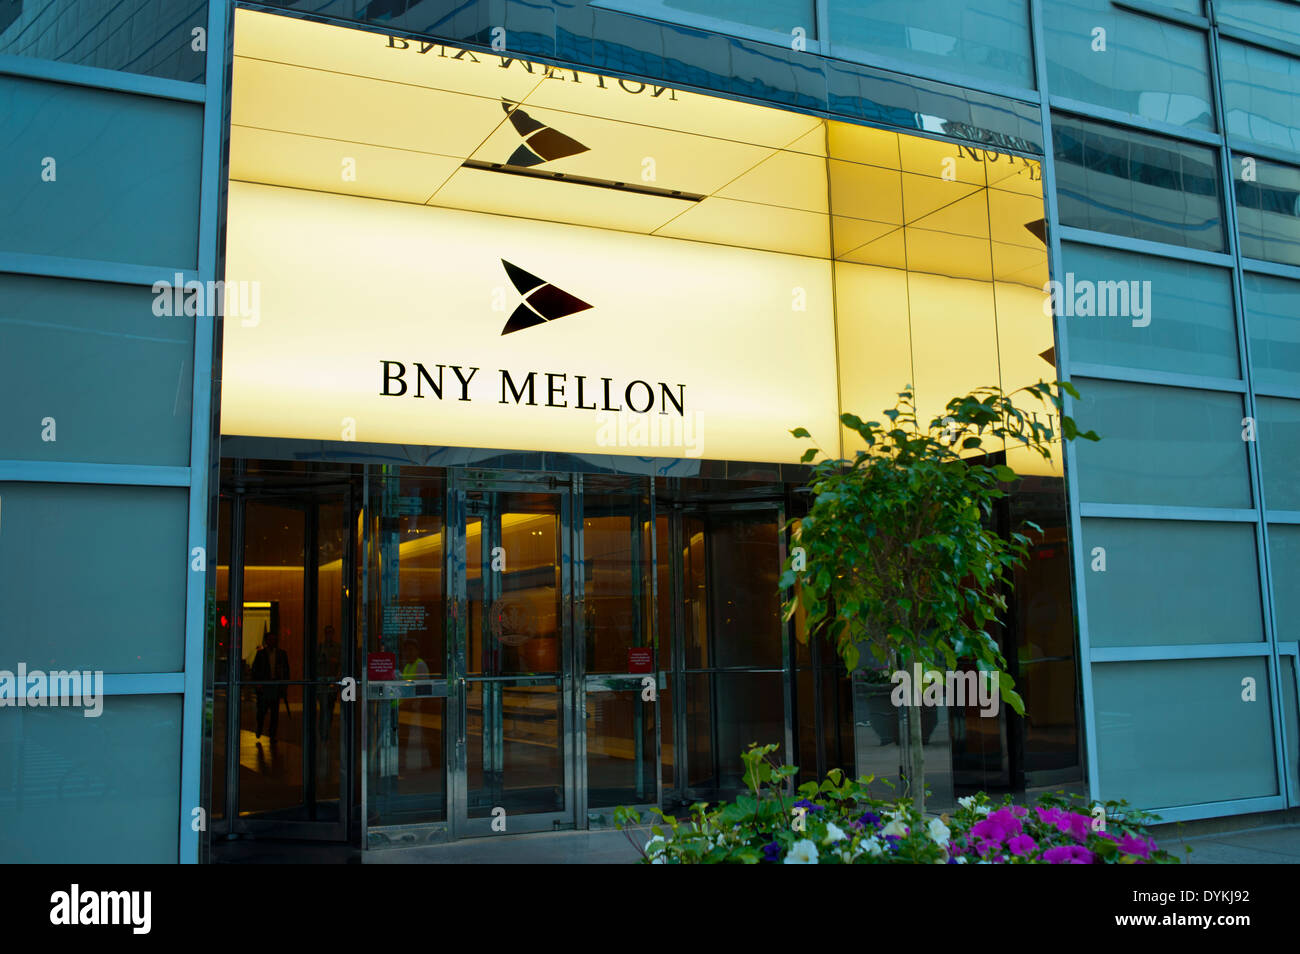 BNY Mellon Financial offices in Downtown Manhattan, New York City - Stock Image